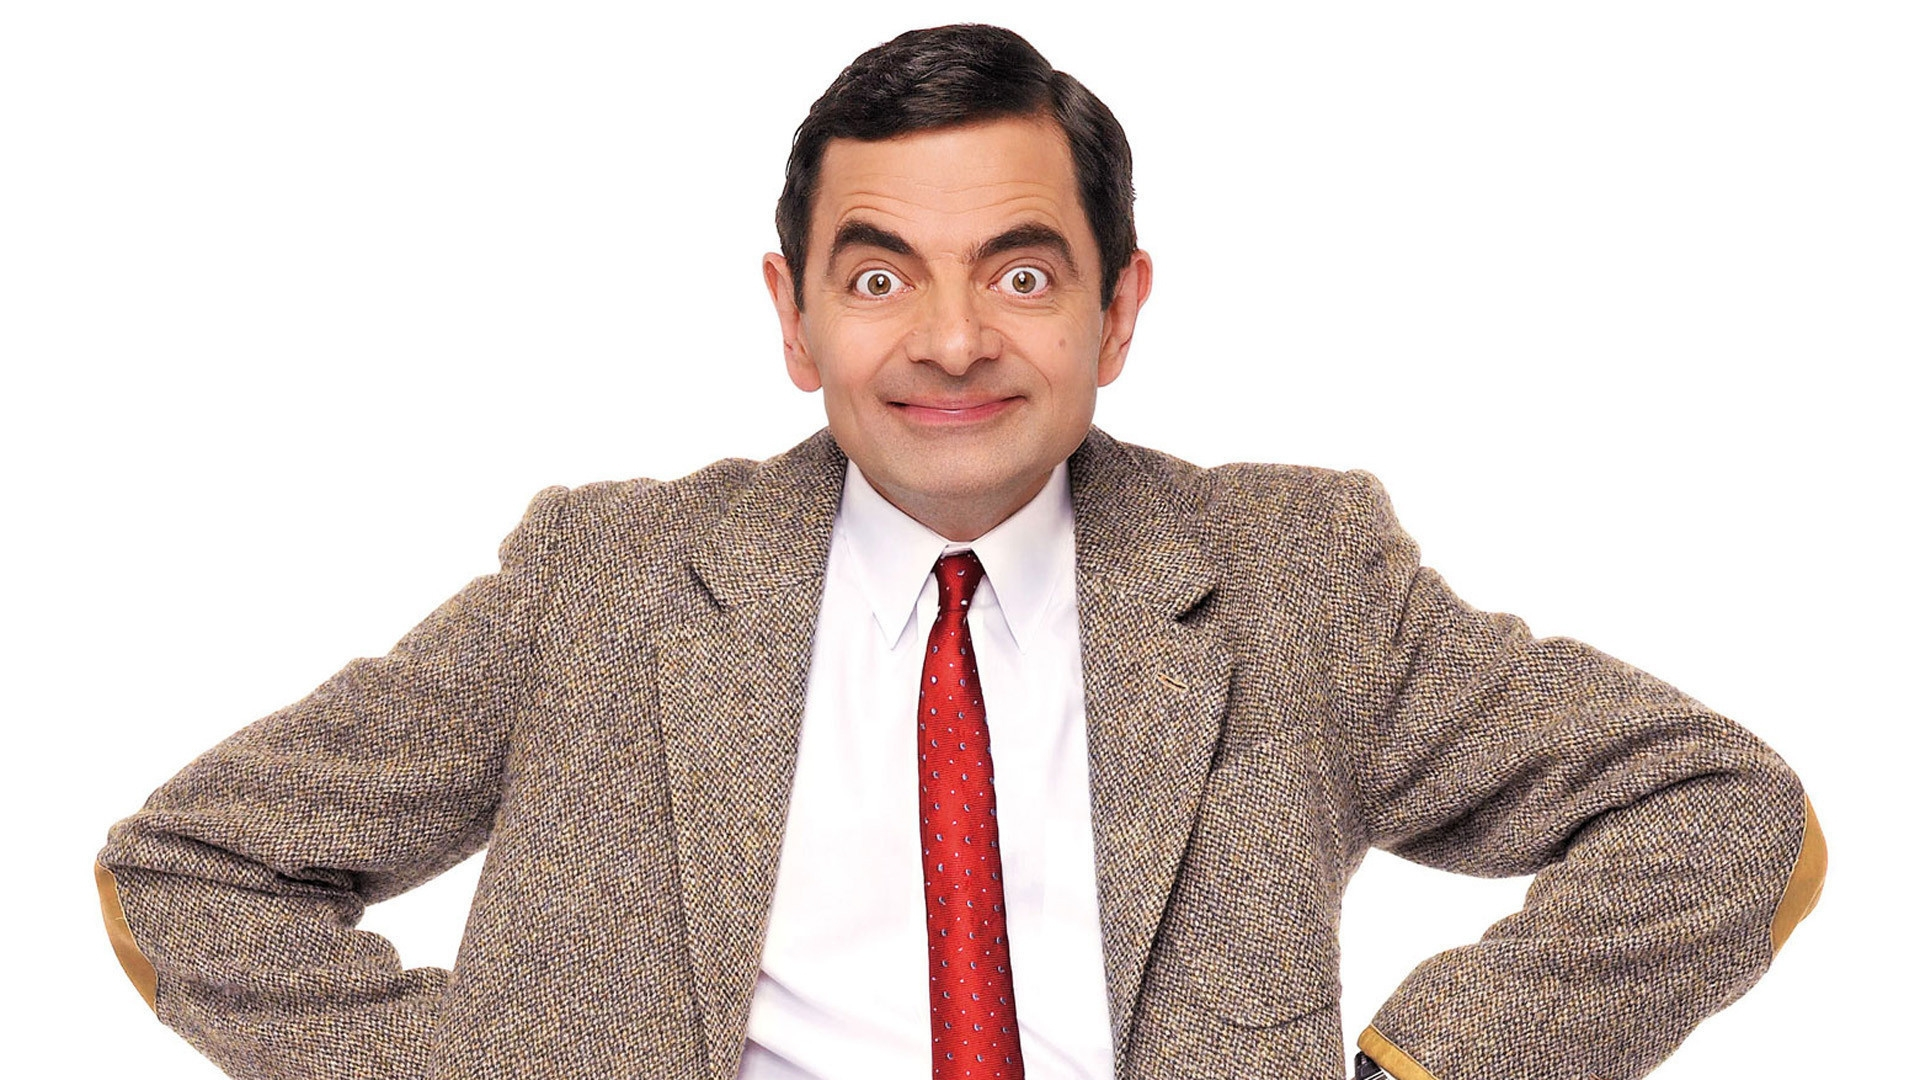 Pictures Of Rowan Atkinson